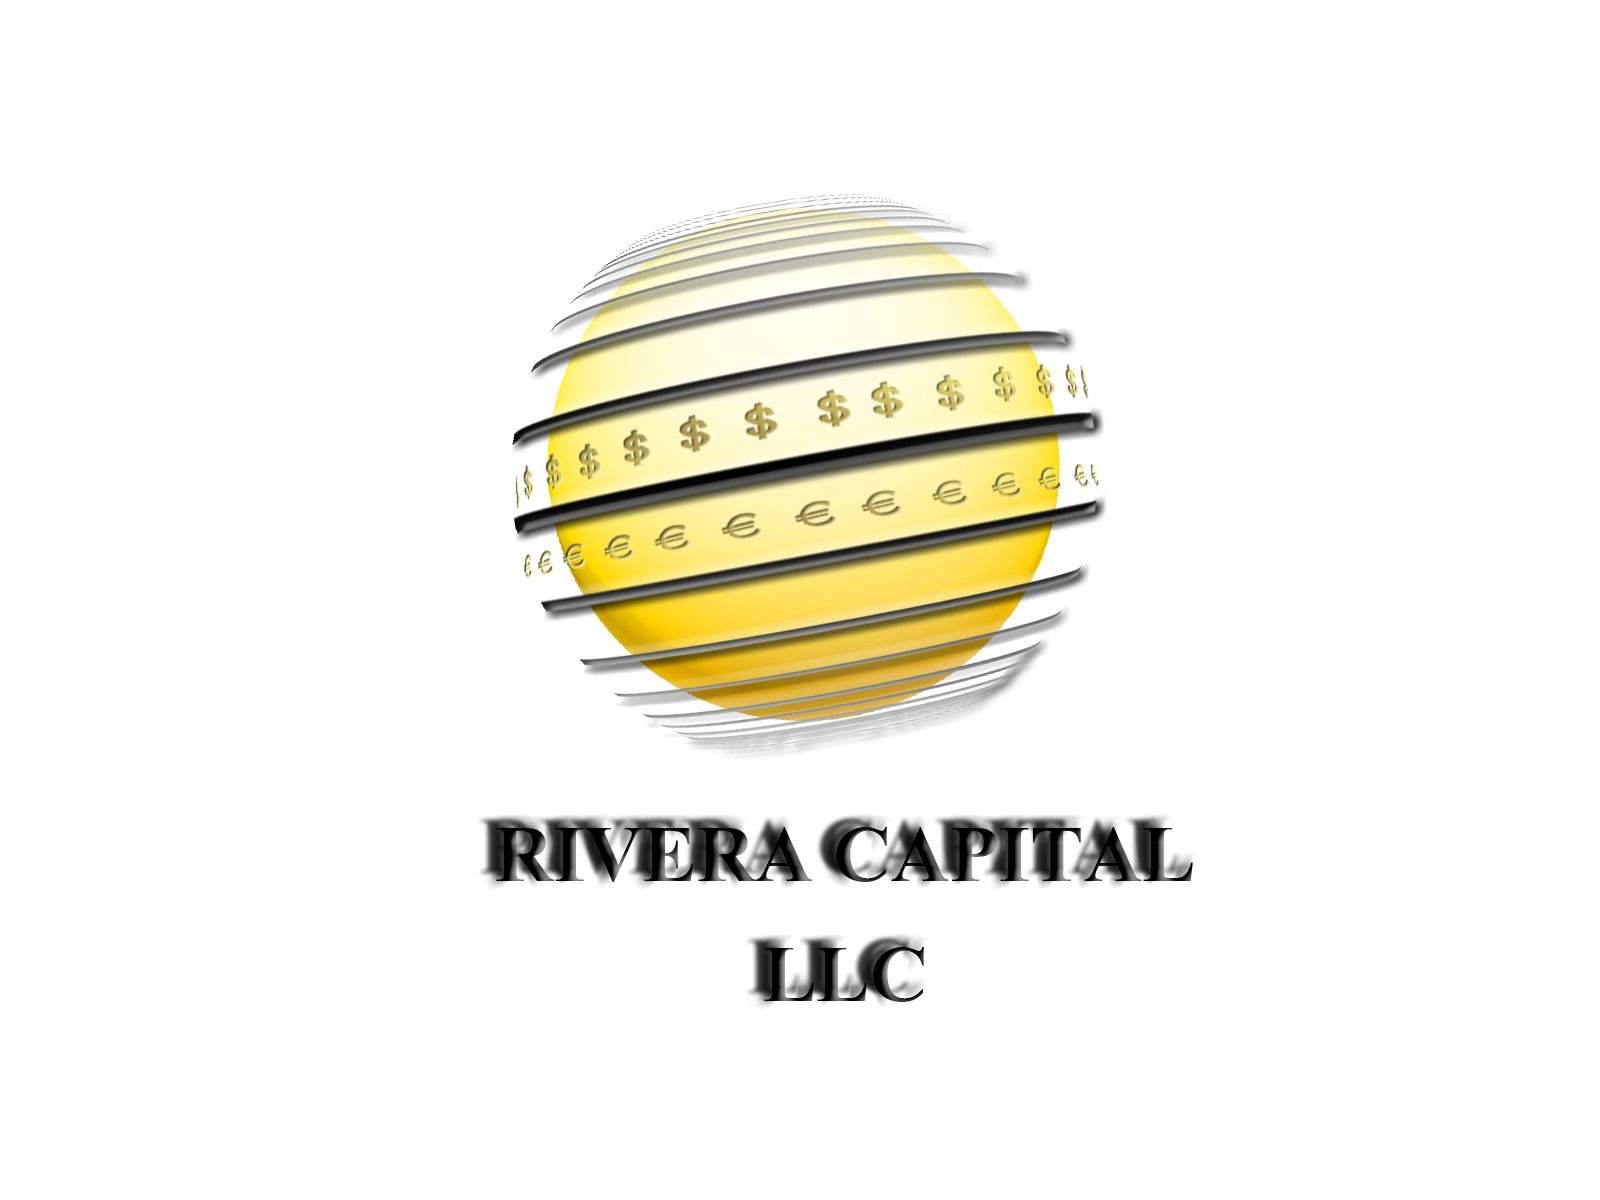 Logo Design by Mythos Designs - Entry No. 68 in the Logo Design Contest Logo Design Needed for Exciting New Company Rivera Capital LLC LLC.